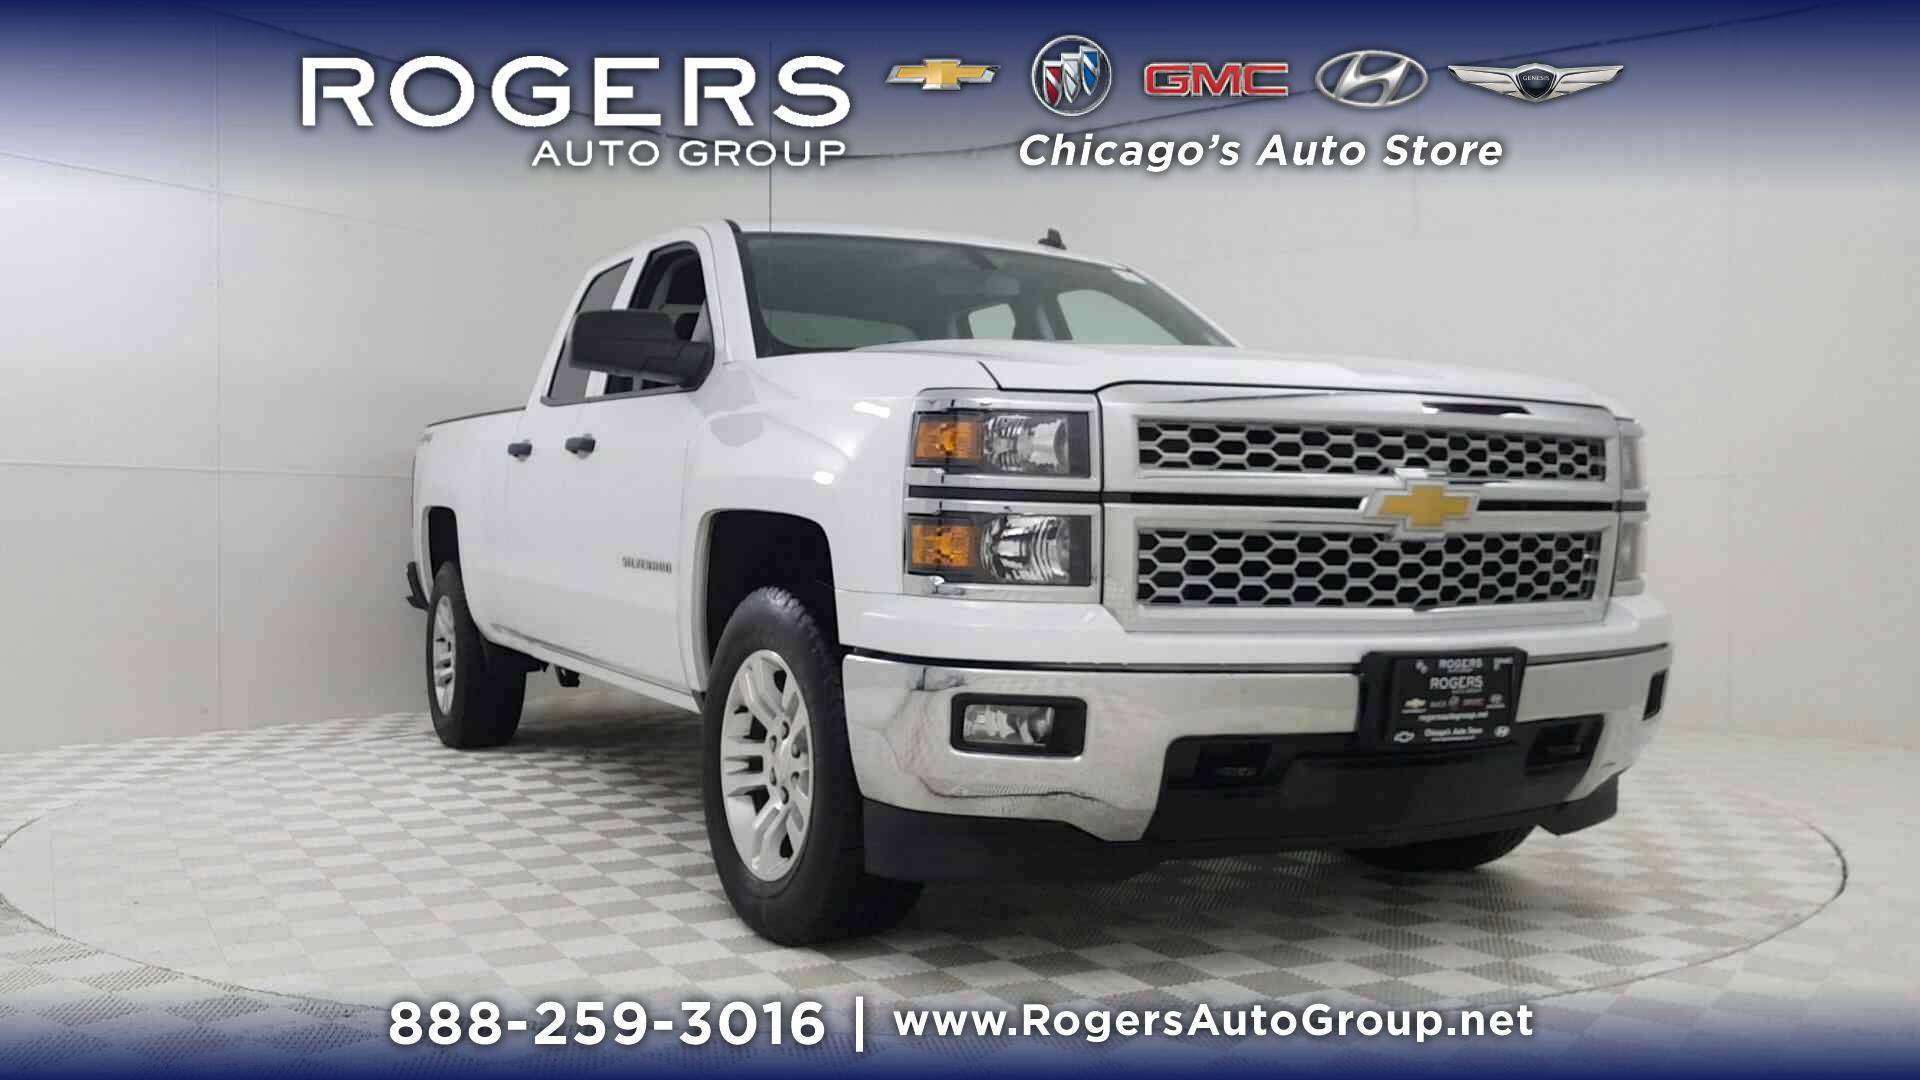 Chicago Used Chevrolet Silverado 1500 Vehicles for Sale